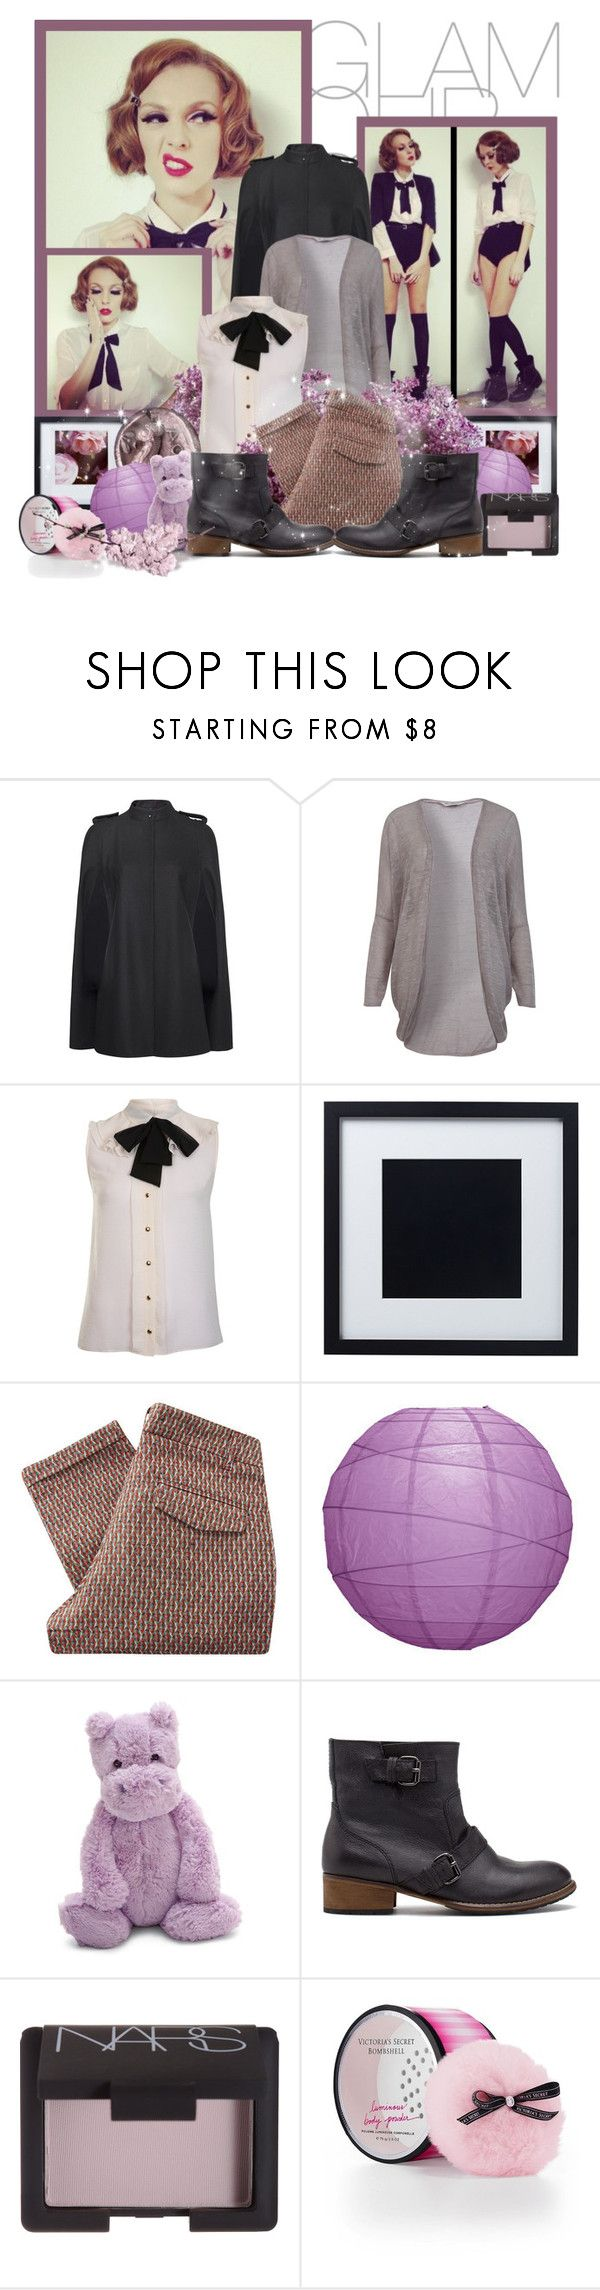 """Deep Purple"" by peony-and-python ❤ liked on Polyvore featuring beauty, MANGO, Miss Selfridge, WALL, Sessùn, Jellycat, Pull&Bear, NARS Cosmetics, Victoria's Secret and cardigan"